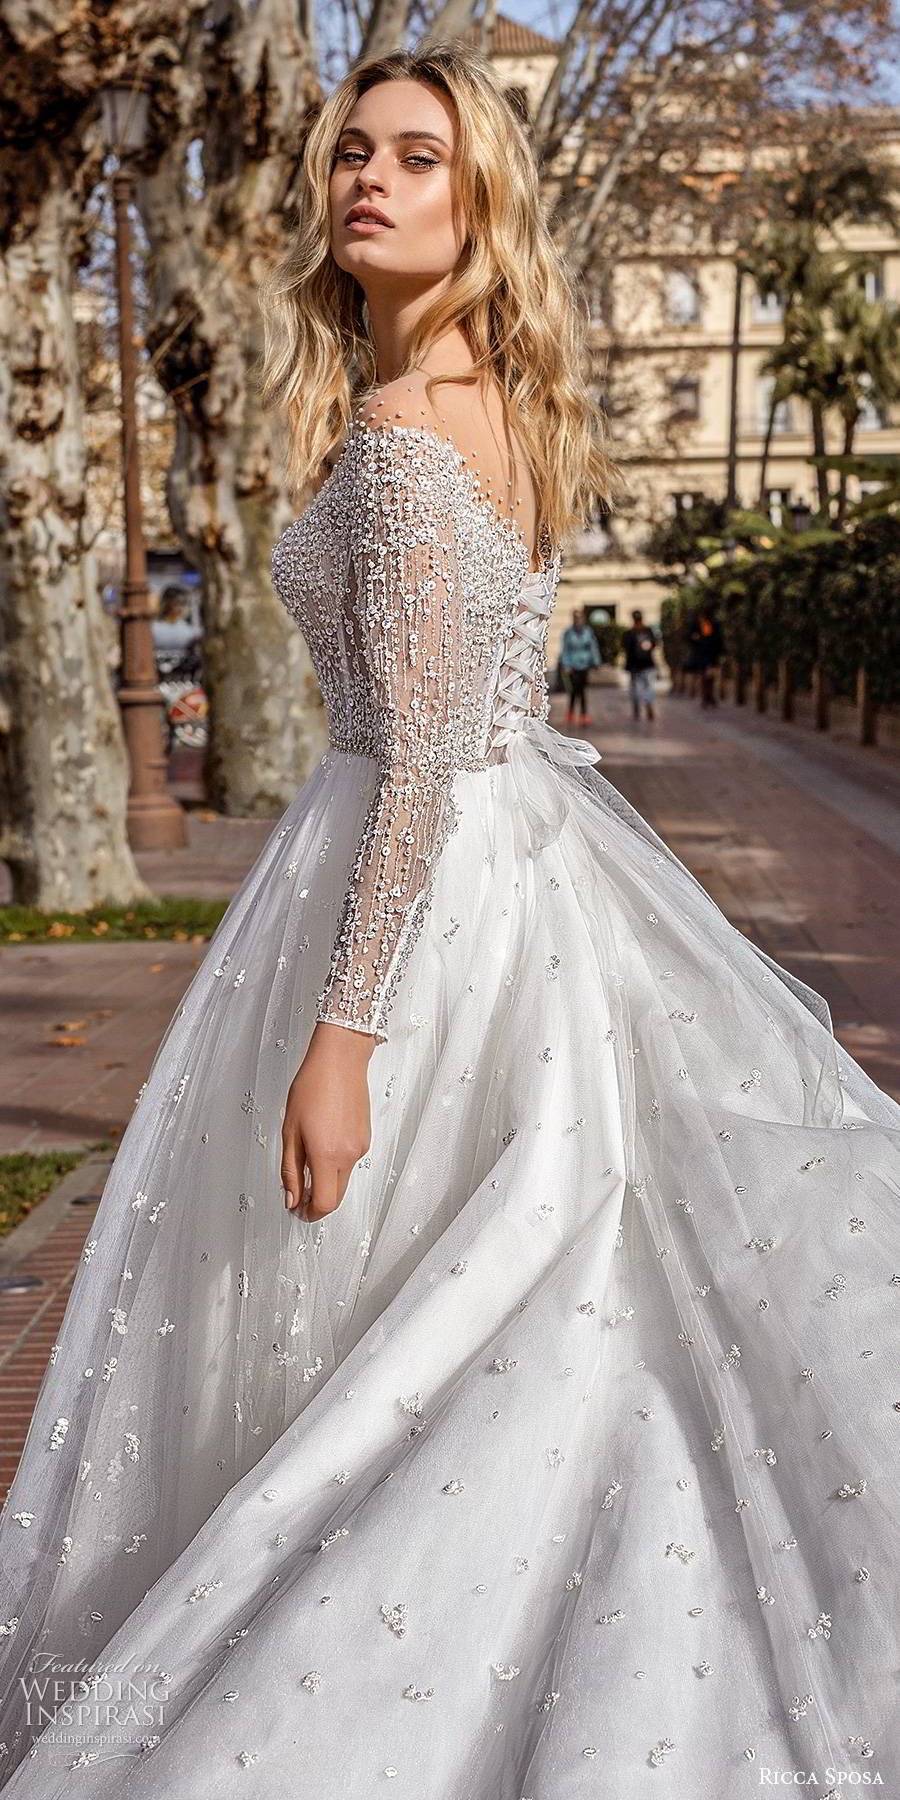 ricca sposa 2019 bridal illusion long sleeves off shoulder sweetheart neckline fully embellished a line romantic glitzy ball gown wedding dress chapel train (13) zbv